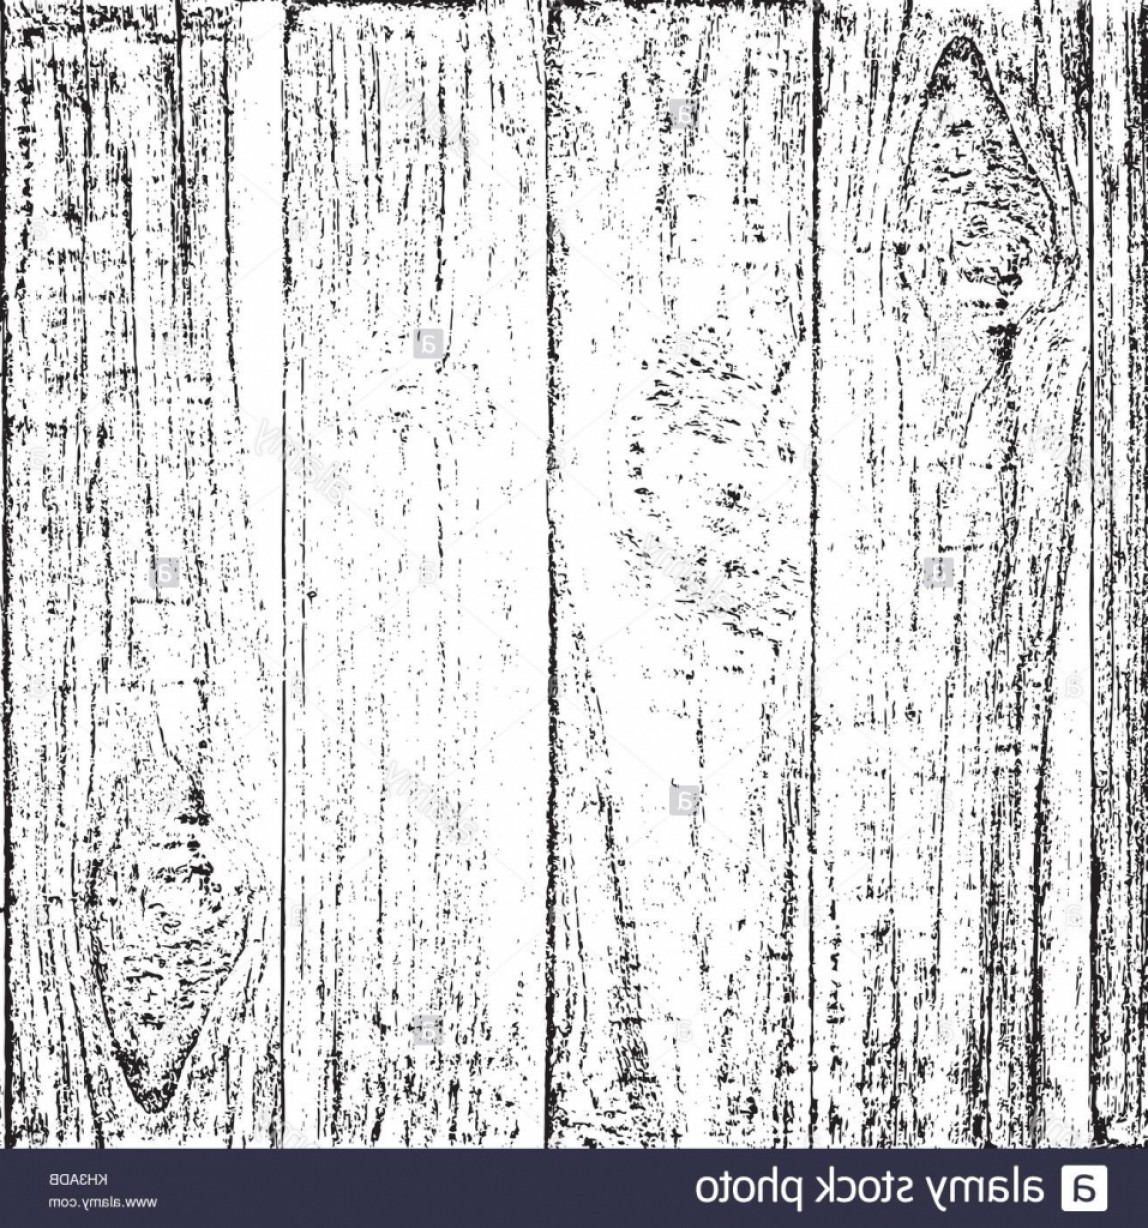 Wood Grain Texture Vector: Wood Texture Vector Use Us Wooden Texture Background Stock For Brilliant As Well As Interesting Free Wood Grain Vector Art For Dream